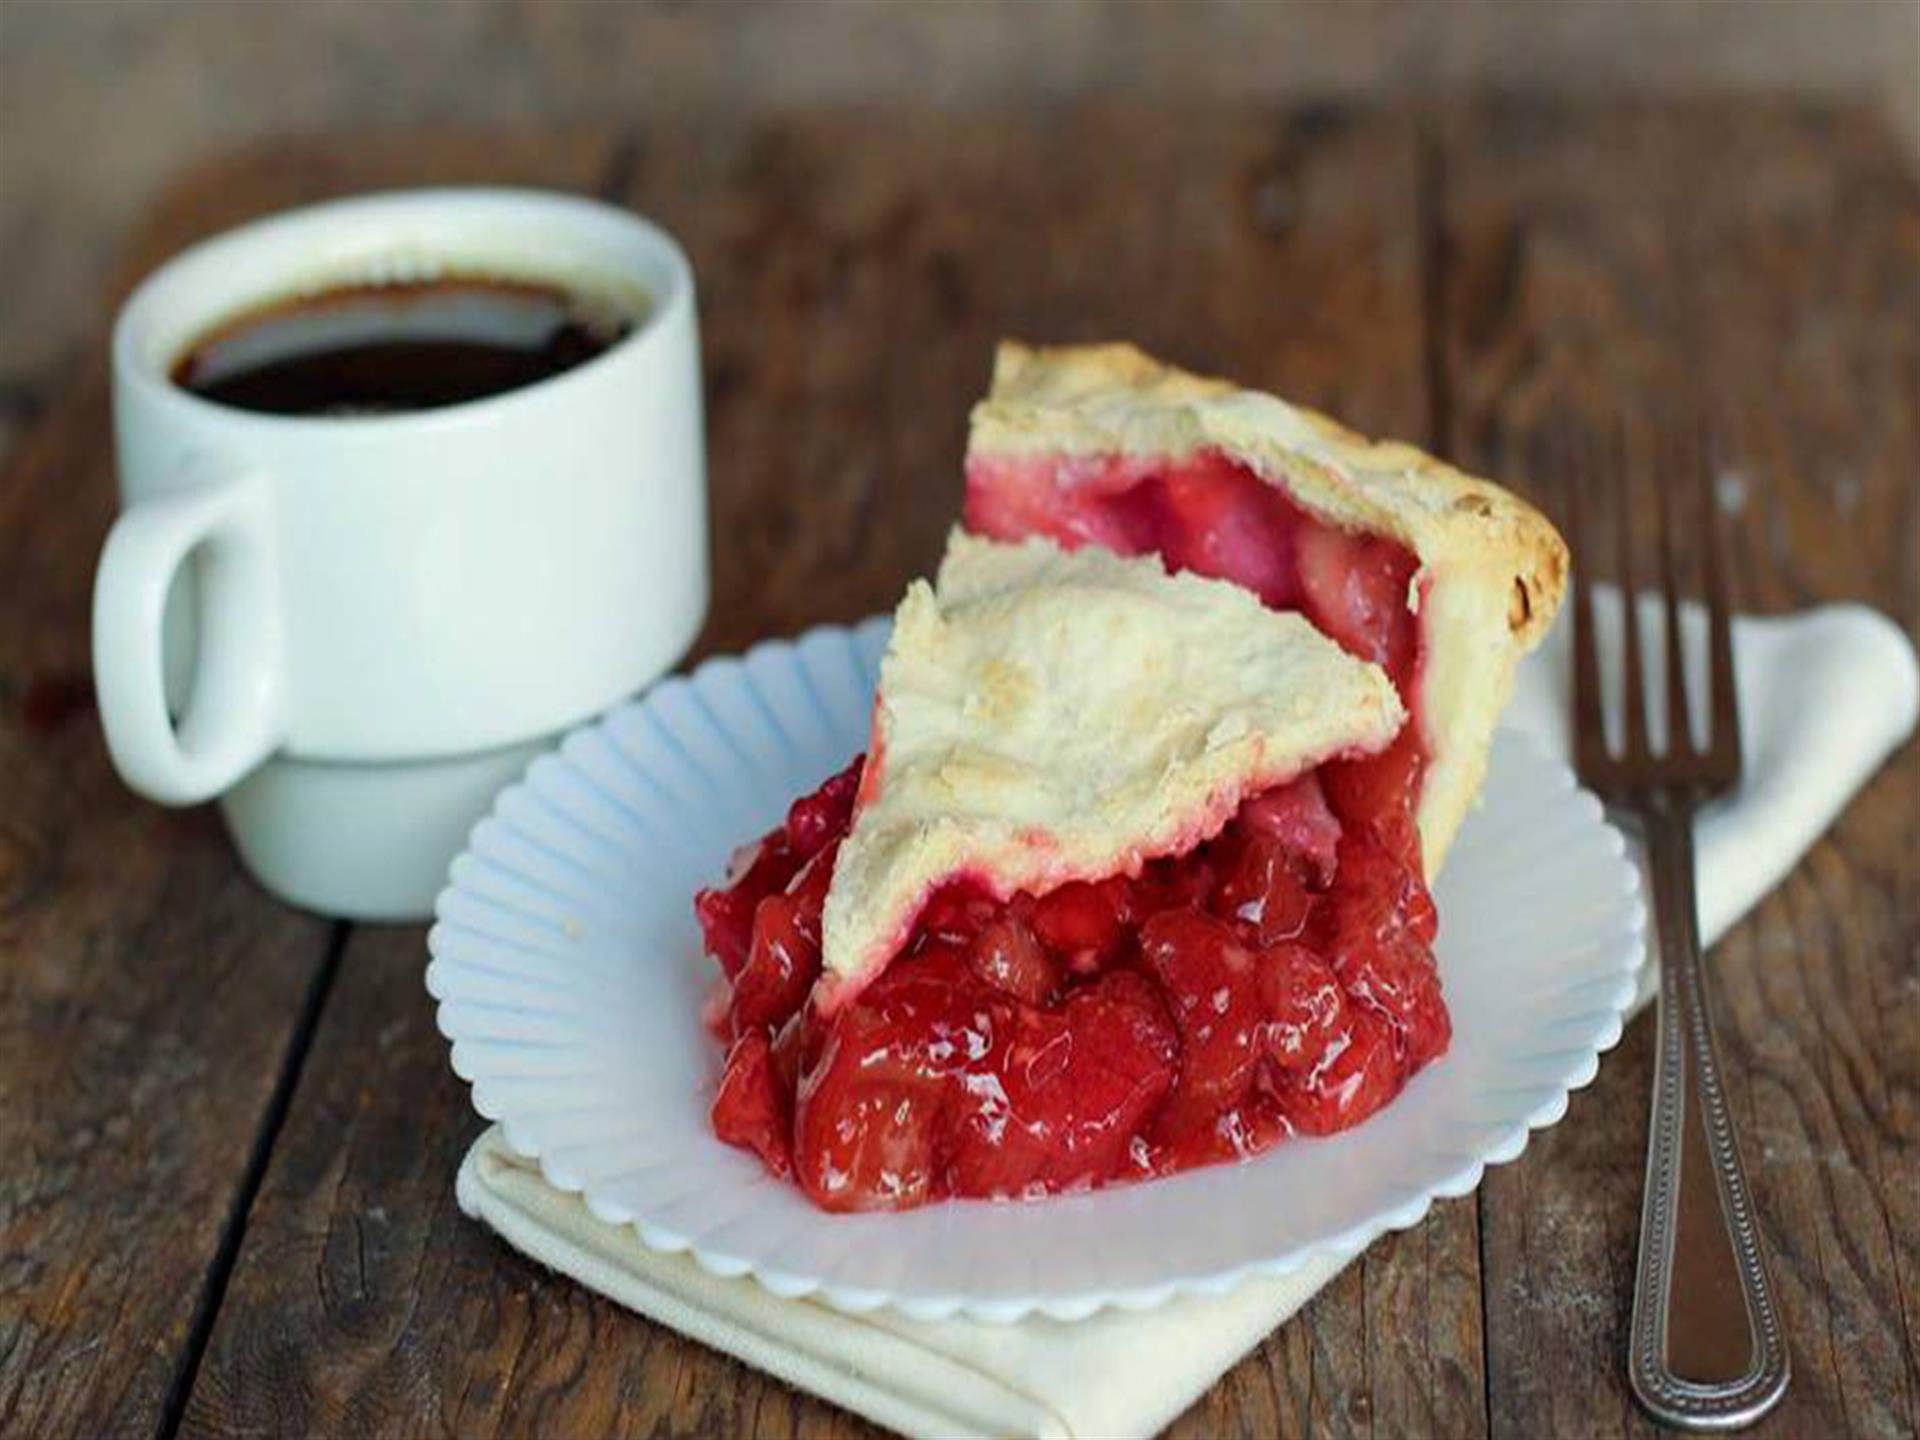 baked cherry pie slice on a plate with a cup of coffee